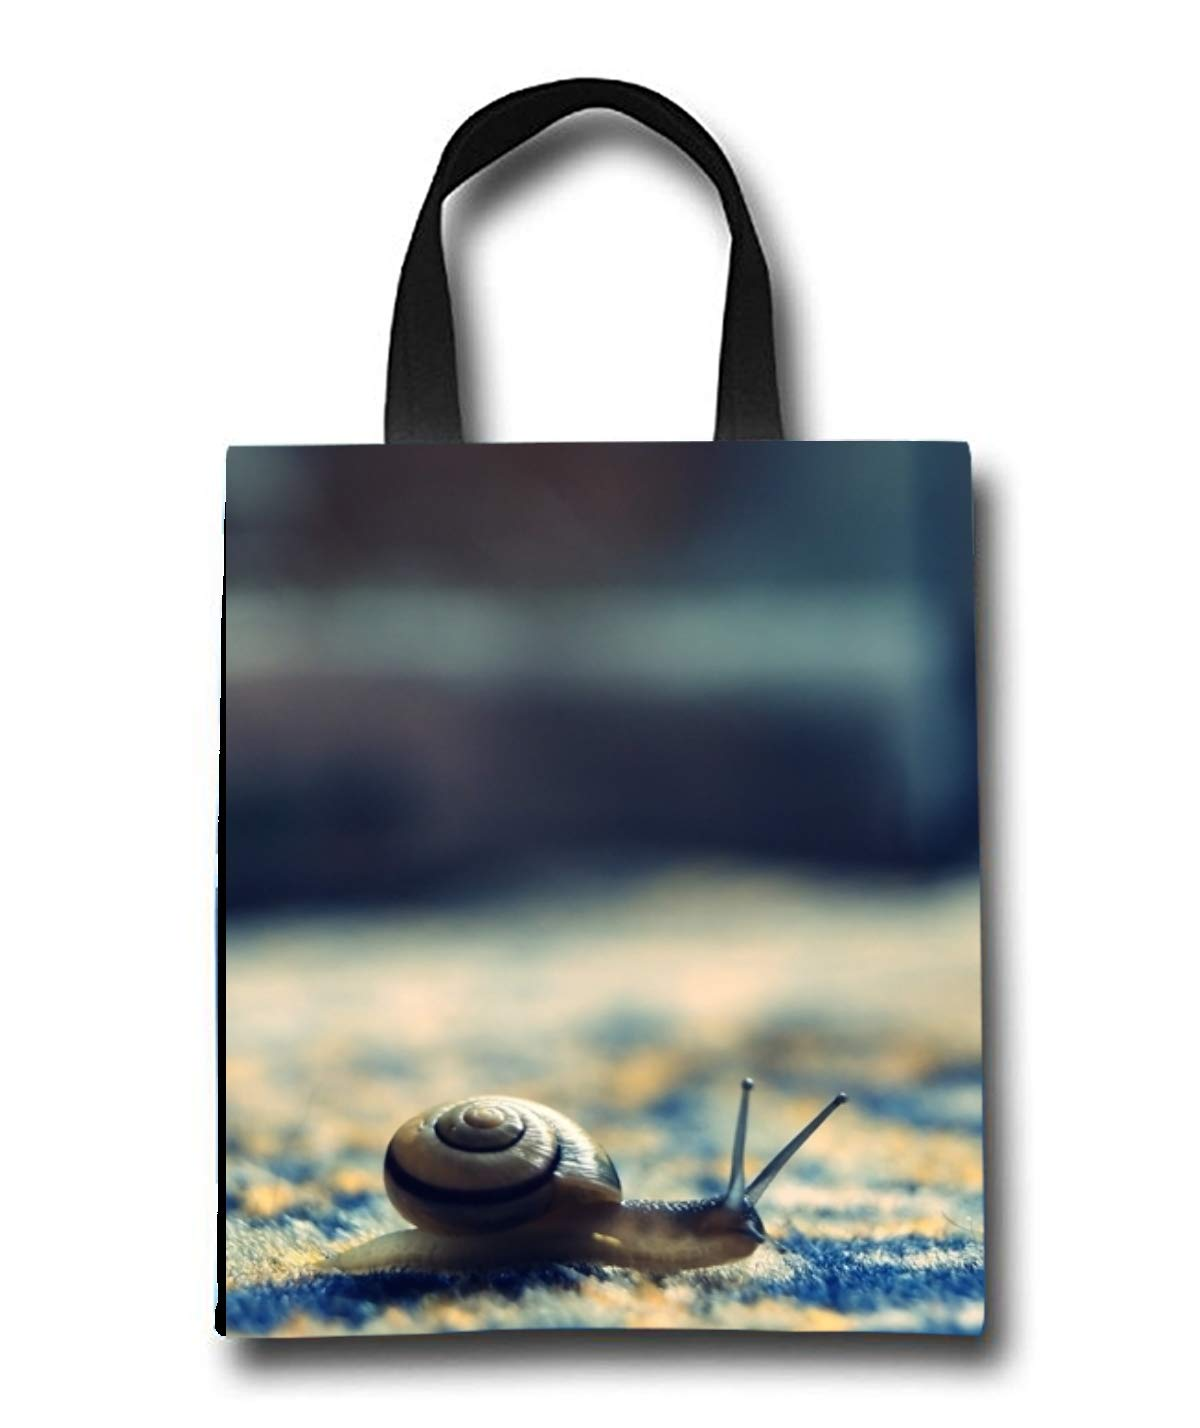 Little Snail Beach Tote Bag - Toy Tote Bag - Large Lightweight Market, Grocery & Picnic